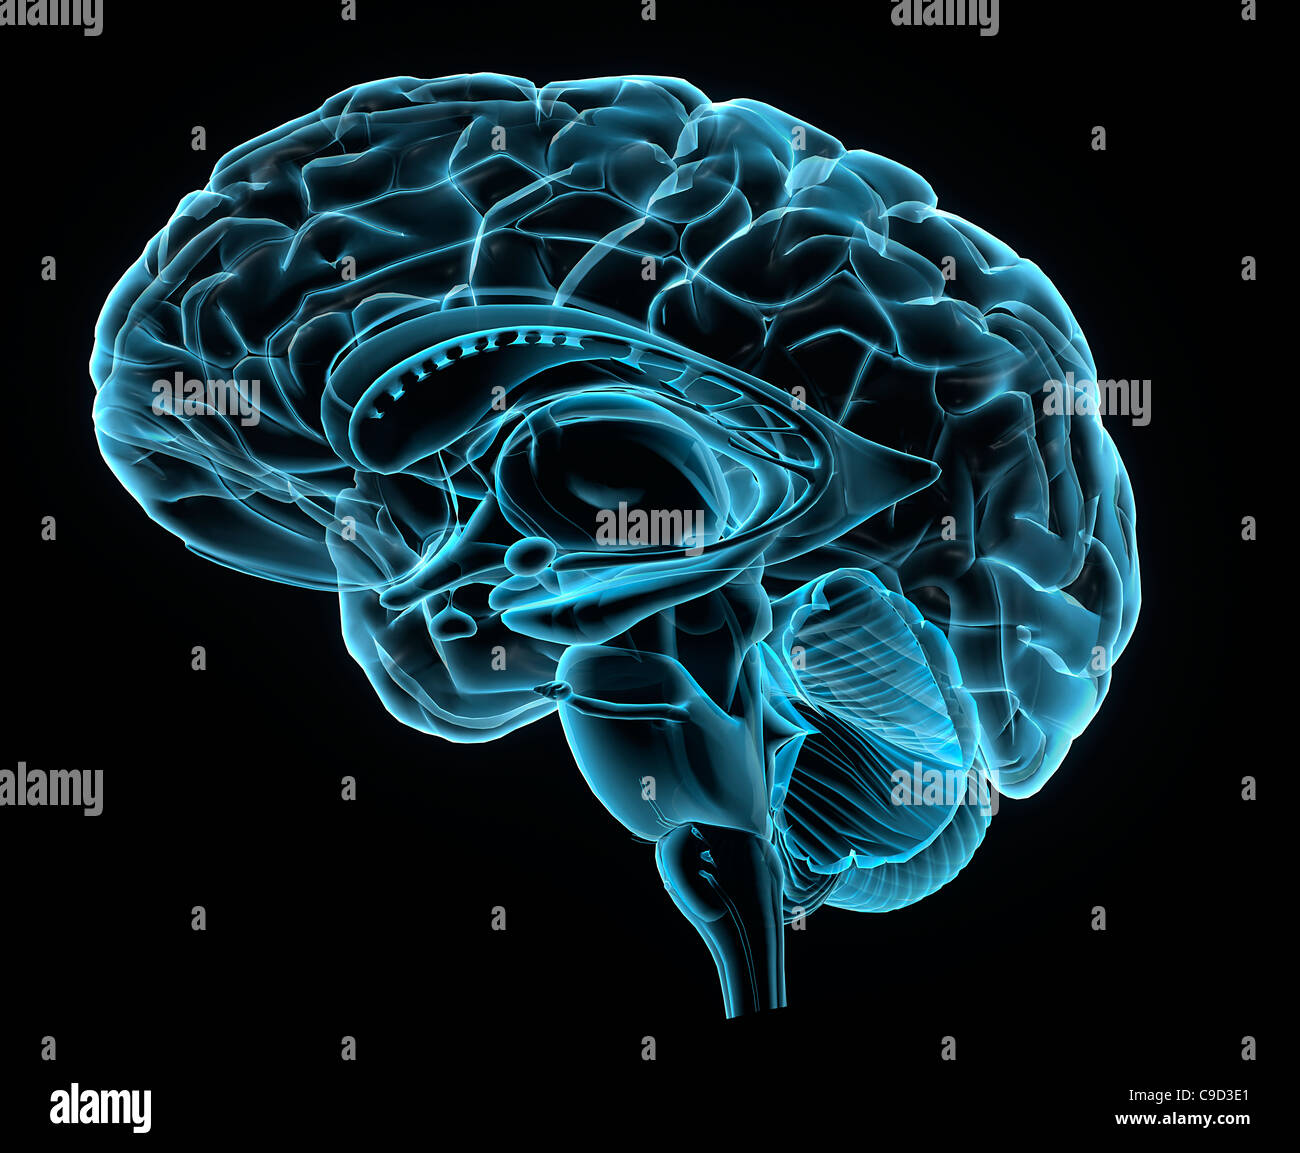 Cross Section Of Human Brain Stock Photos & Cross Section Of Human ...